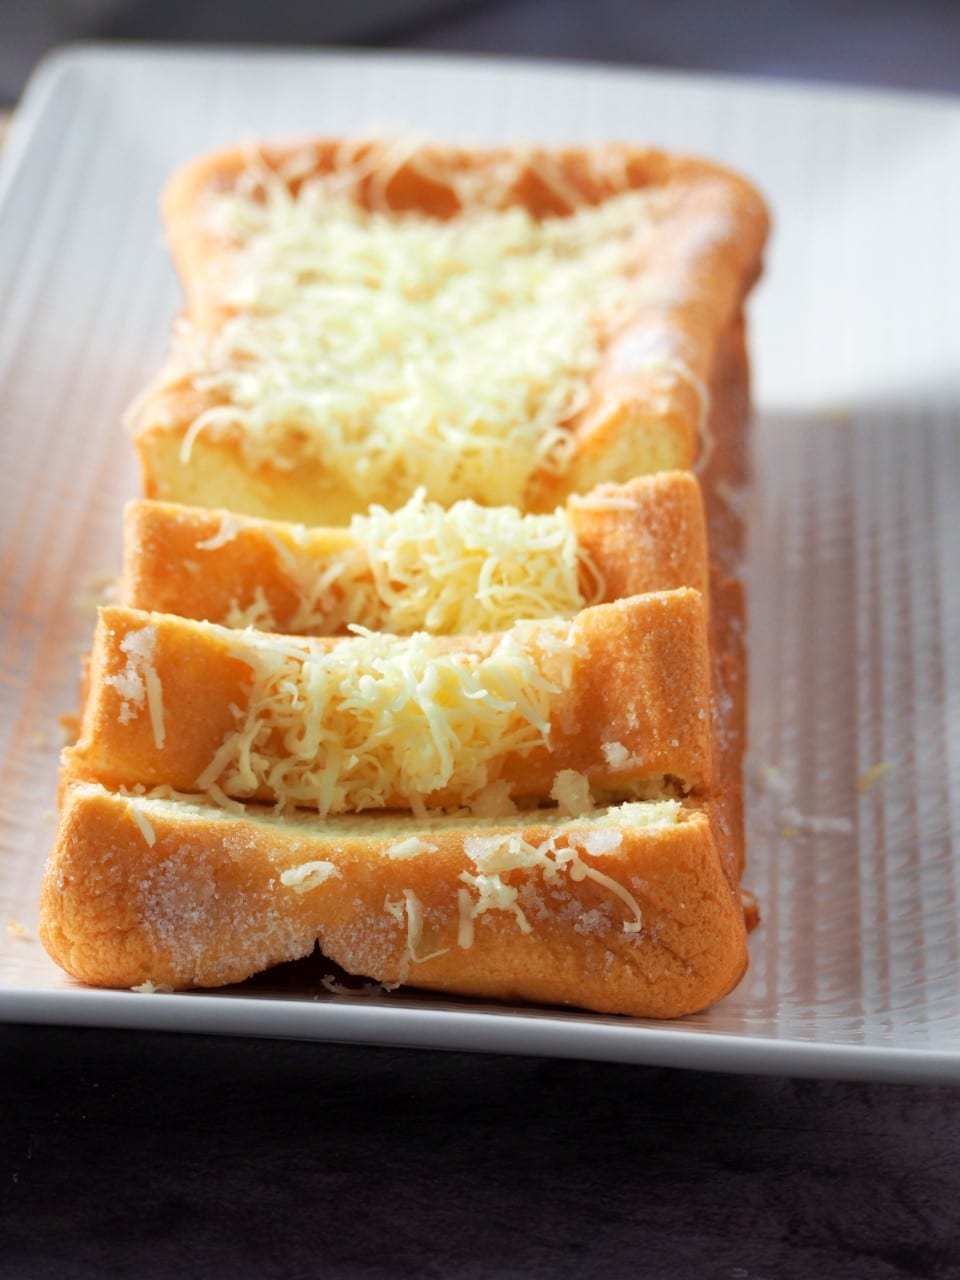 Sliced loaf of Taisan on a serving plate.